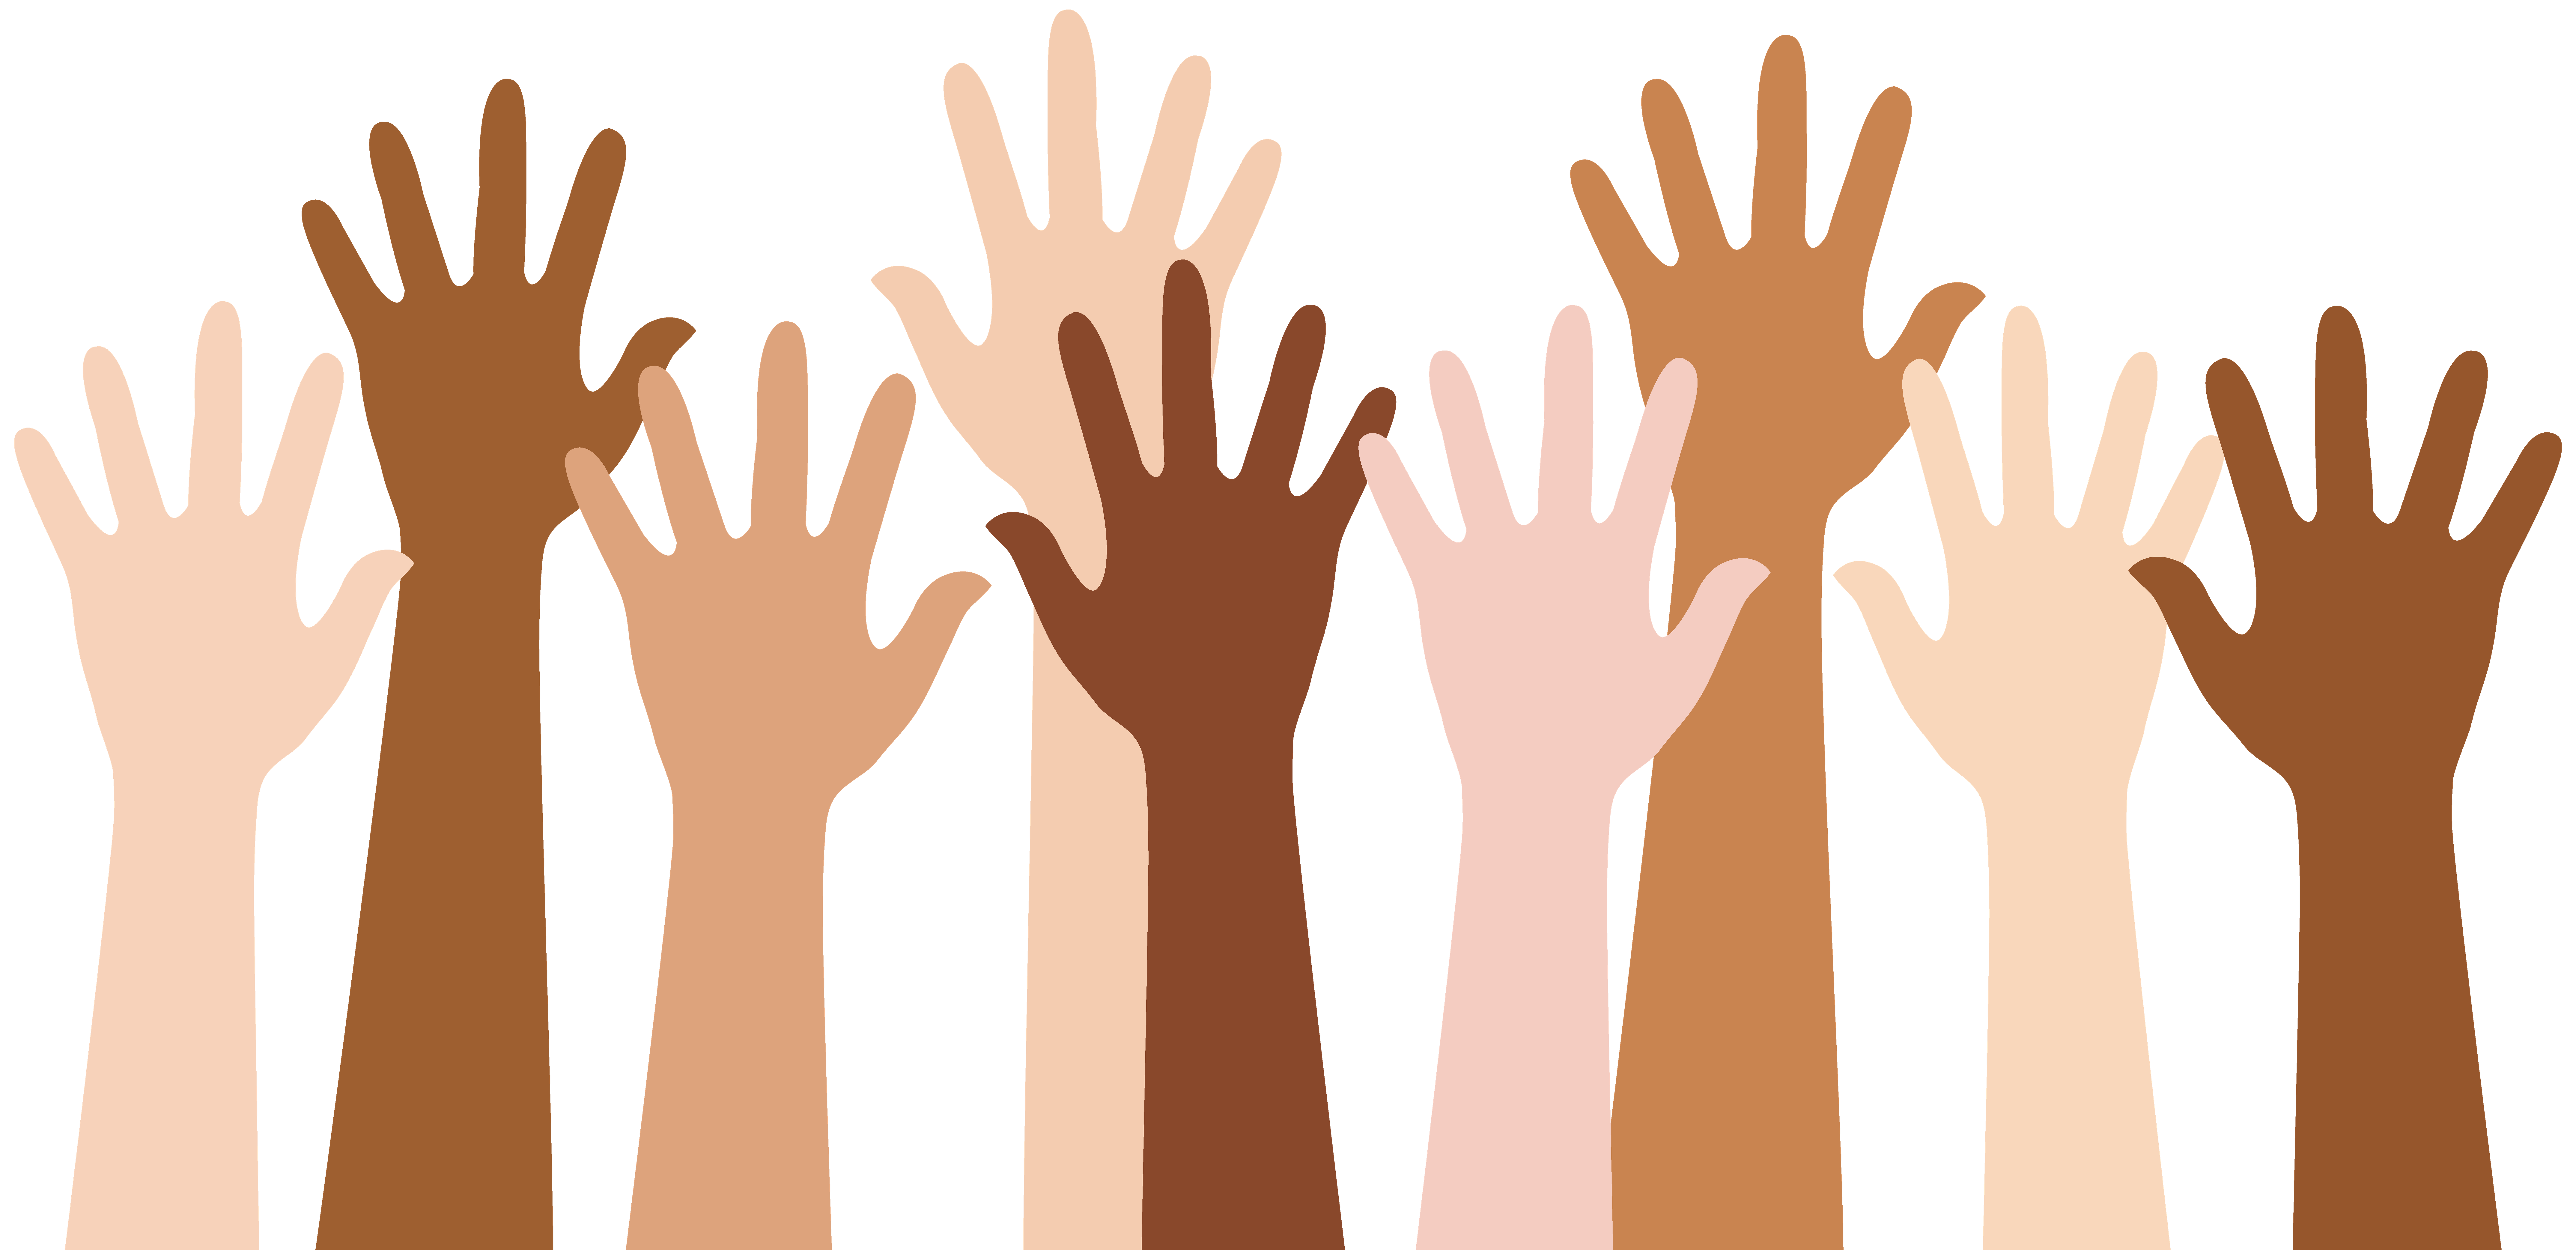 Hands raised in worship clipart black and white stock People Raising Hands | Teaching Ideas in 2019 | Raise your hand ... black and white stock